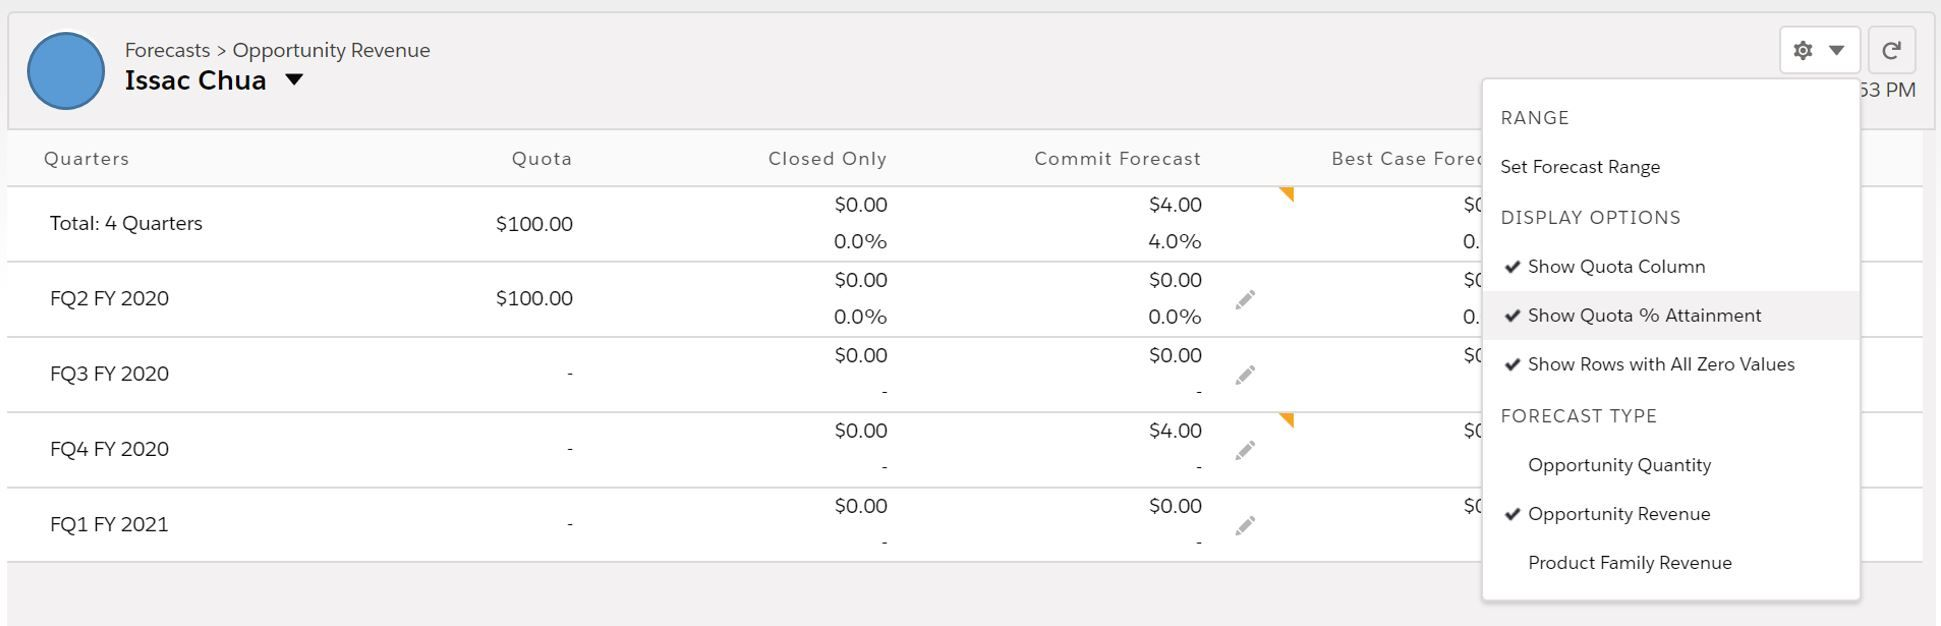 forecast-page-quote-display-options